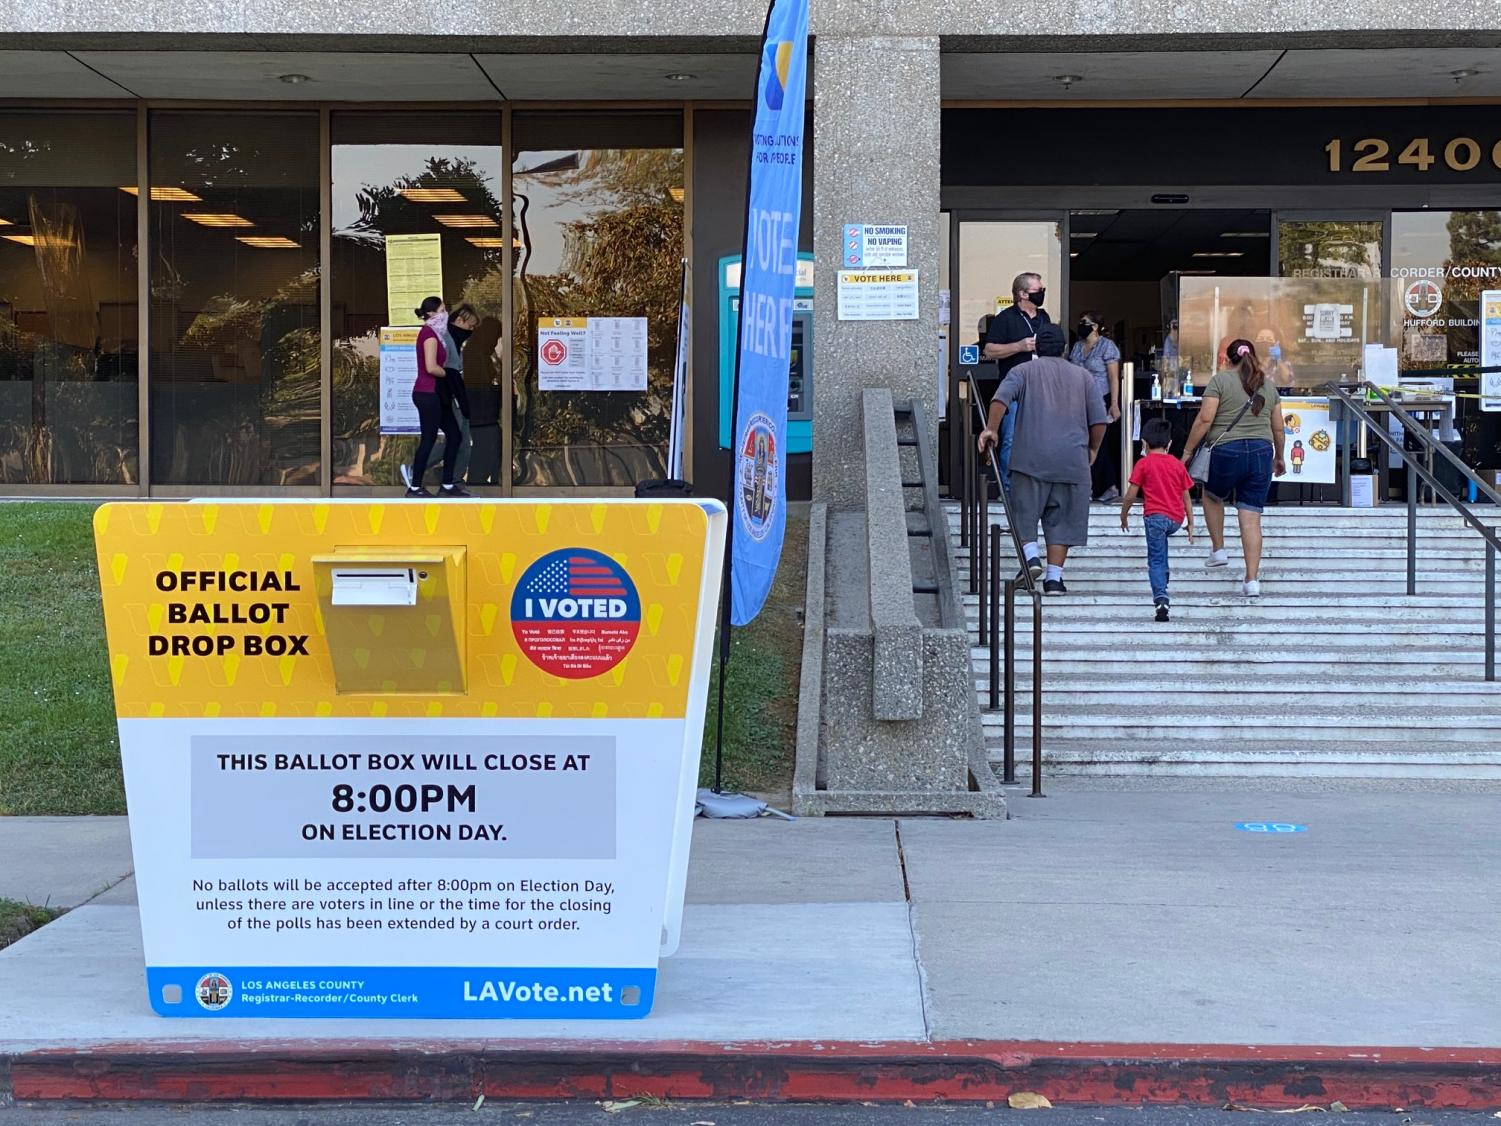 Voters visit the Los Angeles County Recorders Office to vote early for the November 3, 2020 general election. October 15, 2020 Photo credit: Jacqueline Cochran